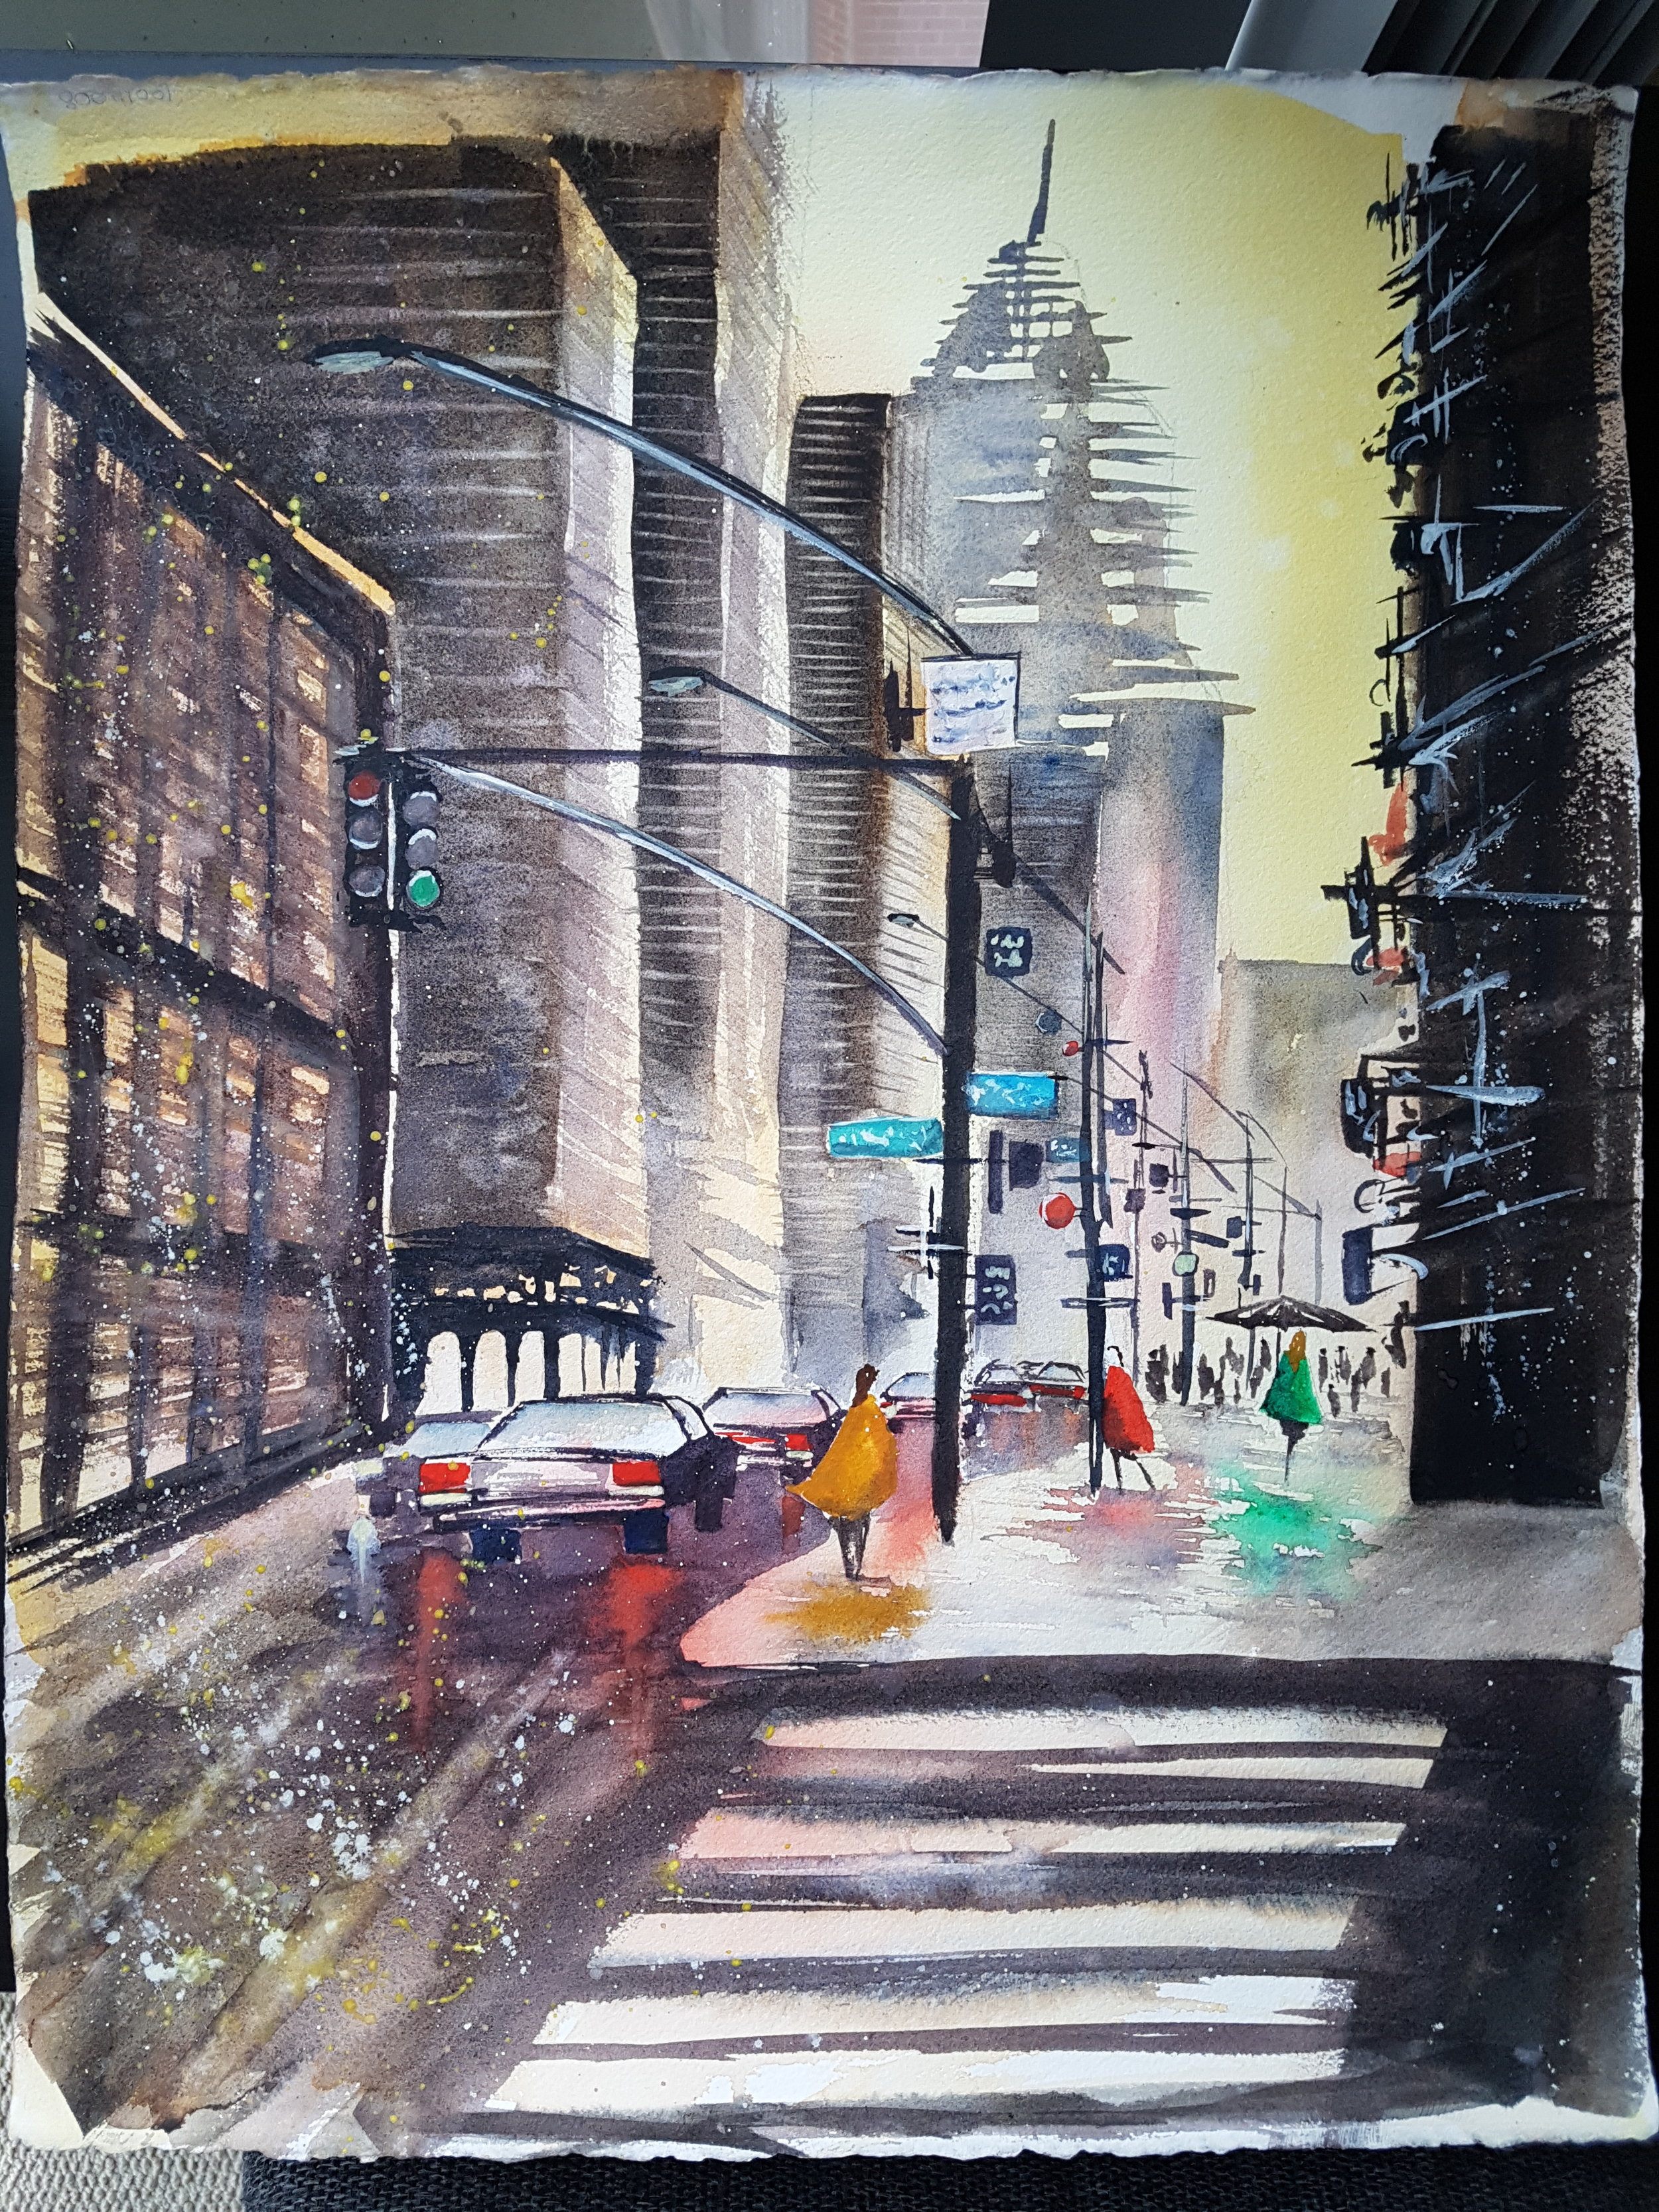 """""""New York, Revisited""""  16x20"""" [SOLD]  As I was learning to paint watercolor, I began to follow a French watercolorist named Umberto Rossini. He makes videos of step-by-step paintings, and from seeing the first video I instantly fell in love with his style. This is my interpretation of his painting """"NYC.""""  You can see more from Umberto Rossini on  his YouTube channel."""